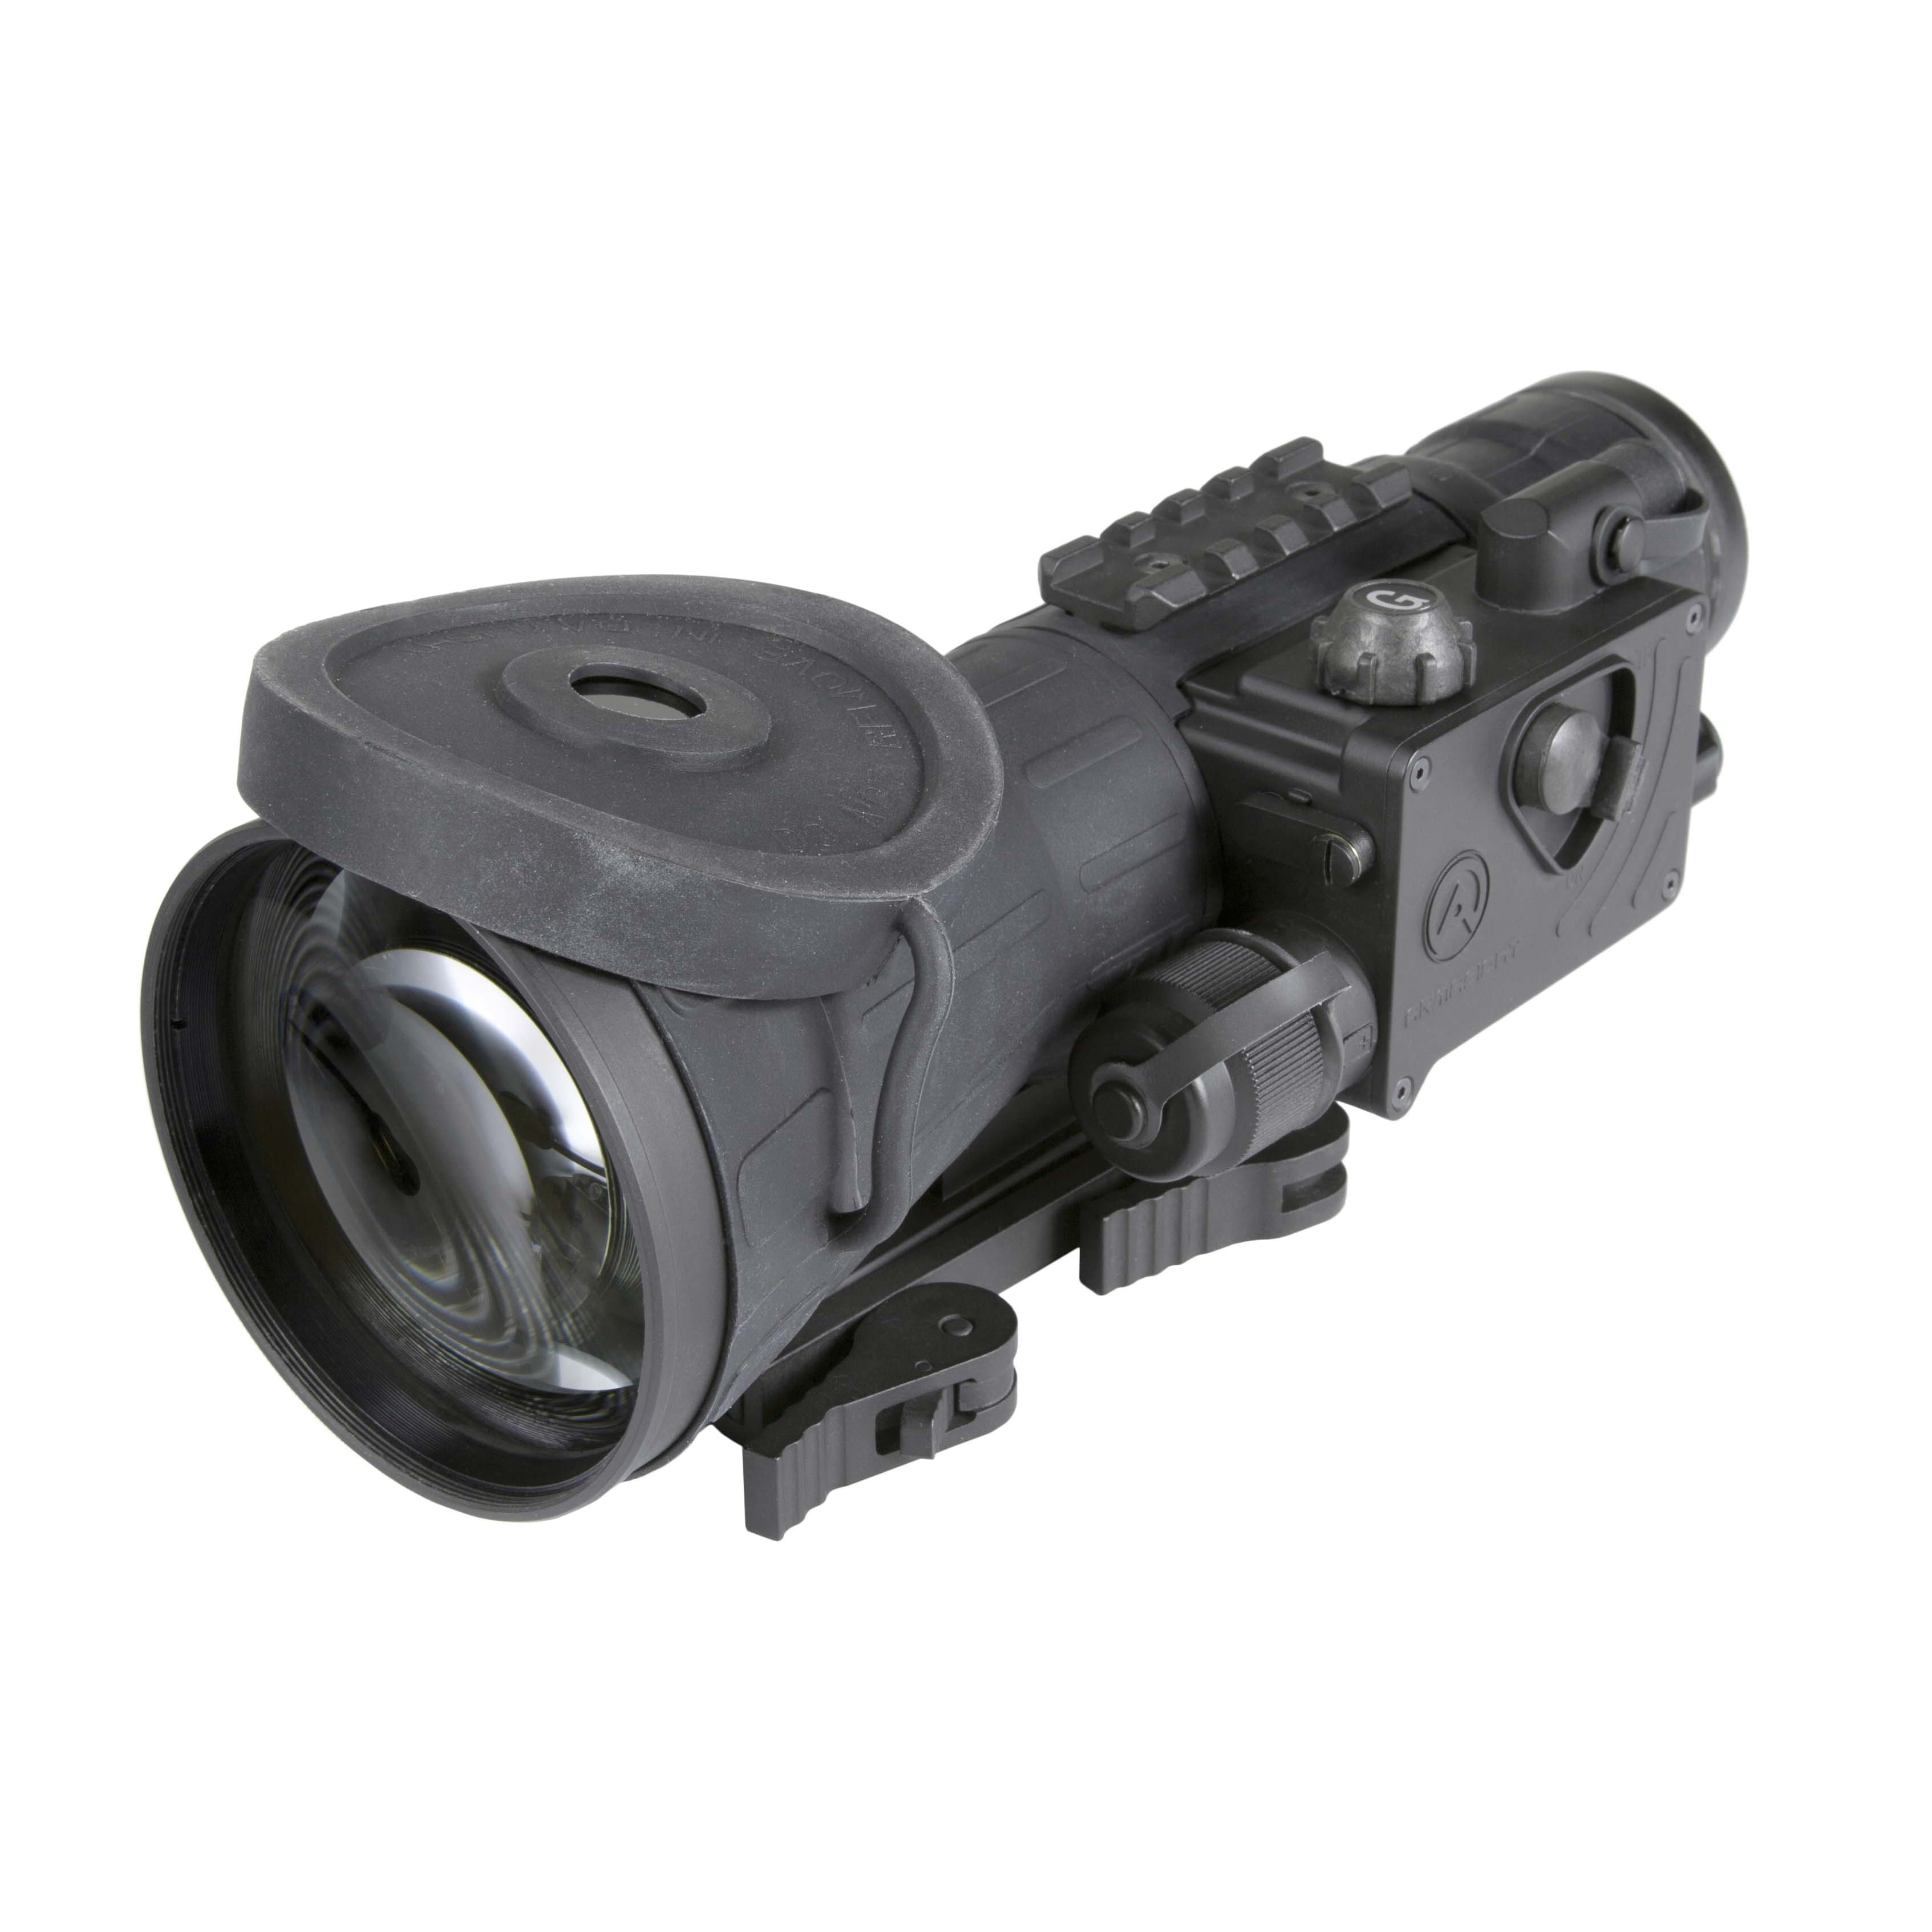 Armasight CO-LR HD MG Black Night Vision Long Range Clip-on System Gen 2+ High Definition With Manual Gain by Overstock